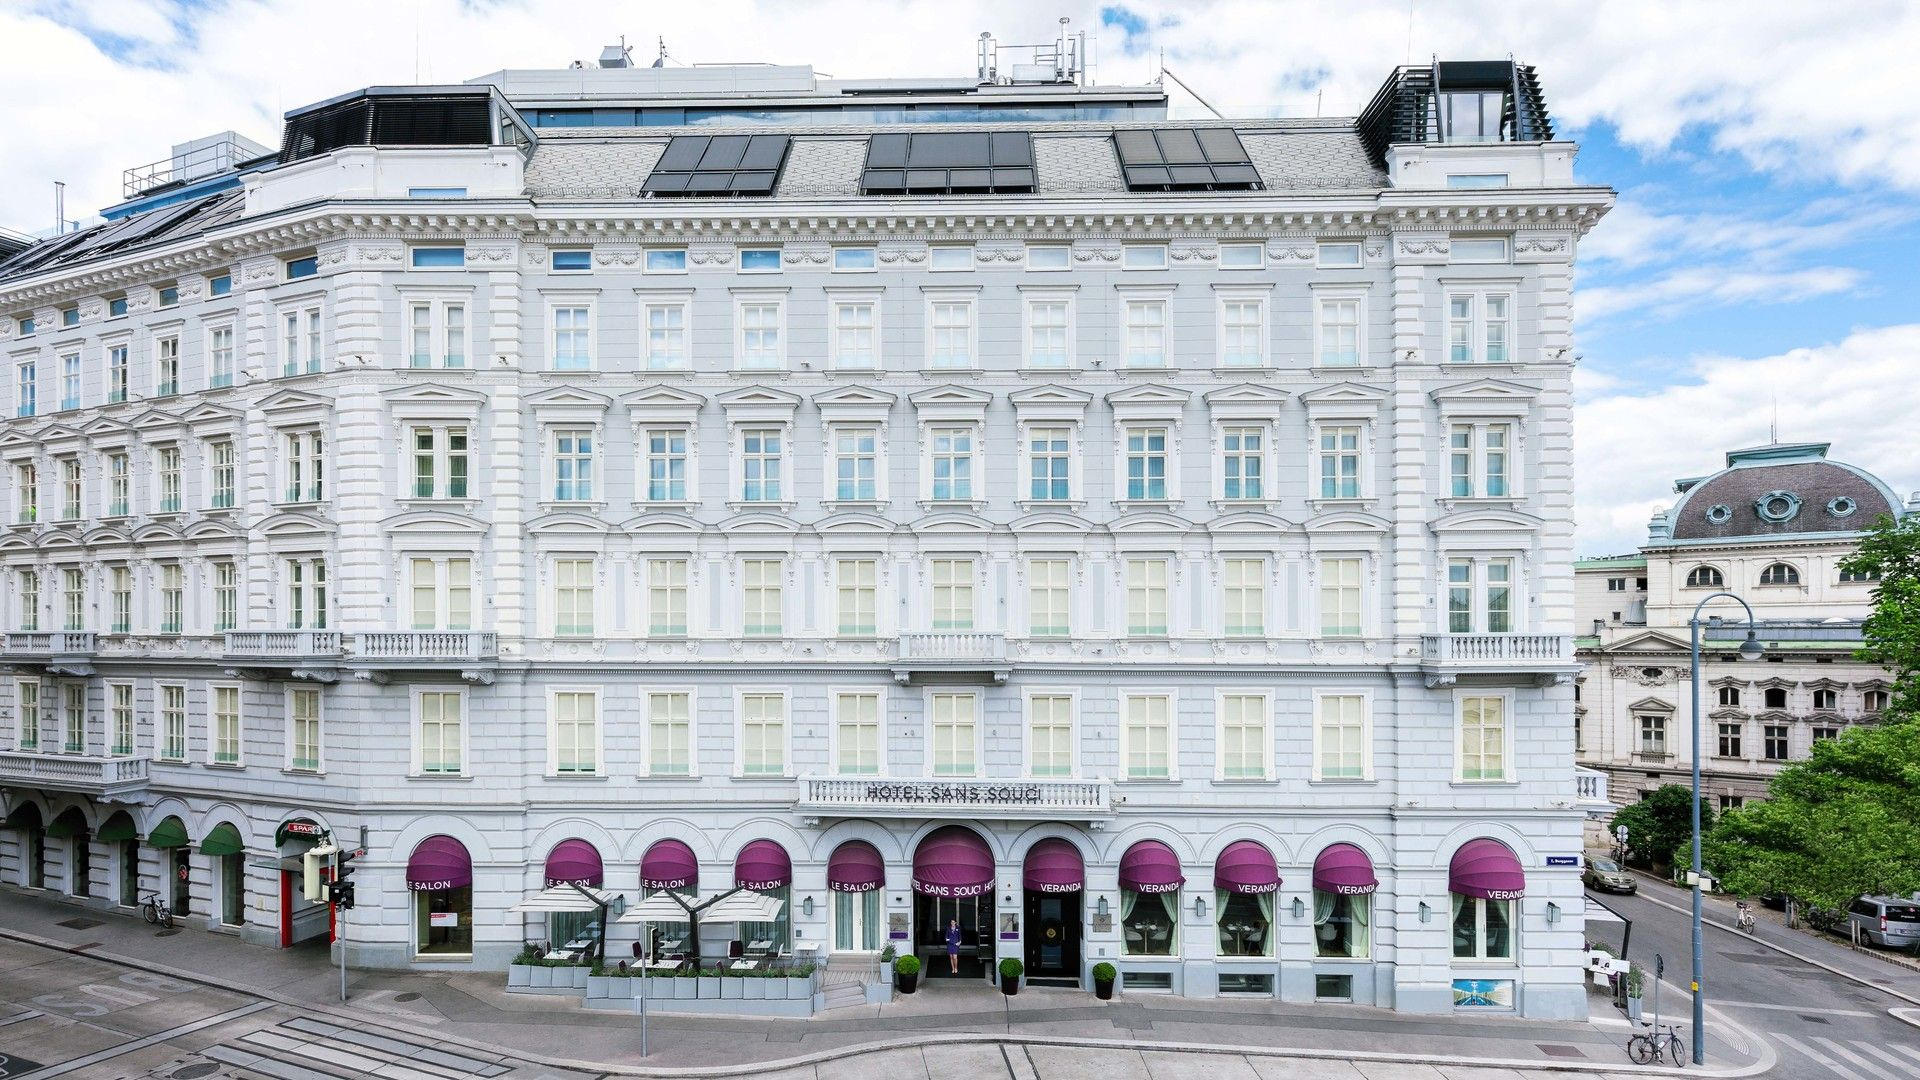 The Best Hotels To Book For Your Next Trip To Austria